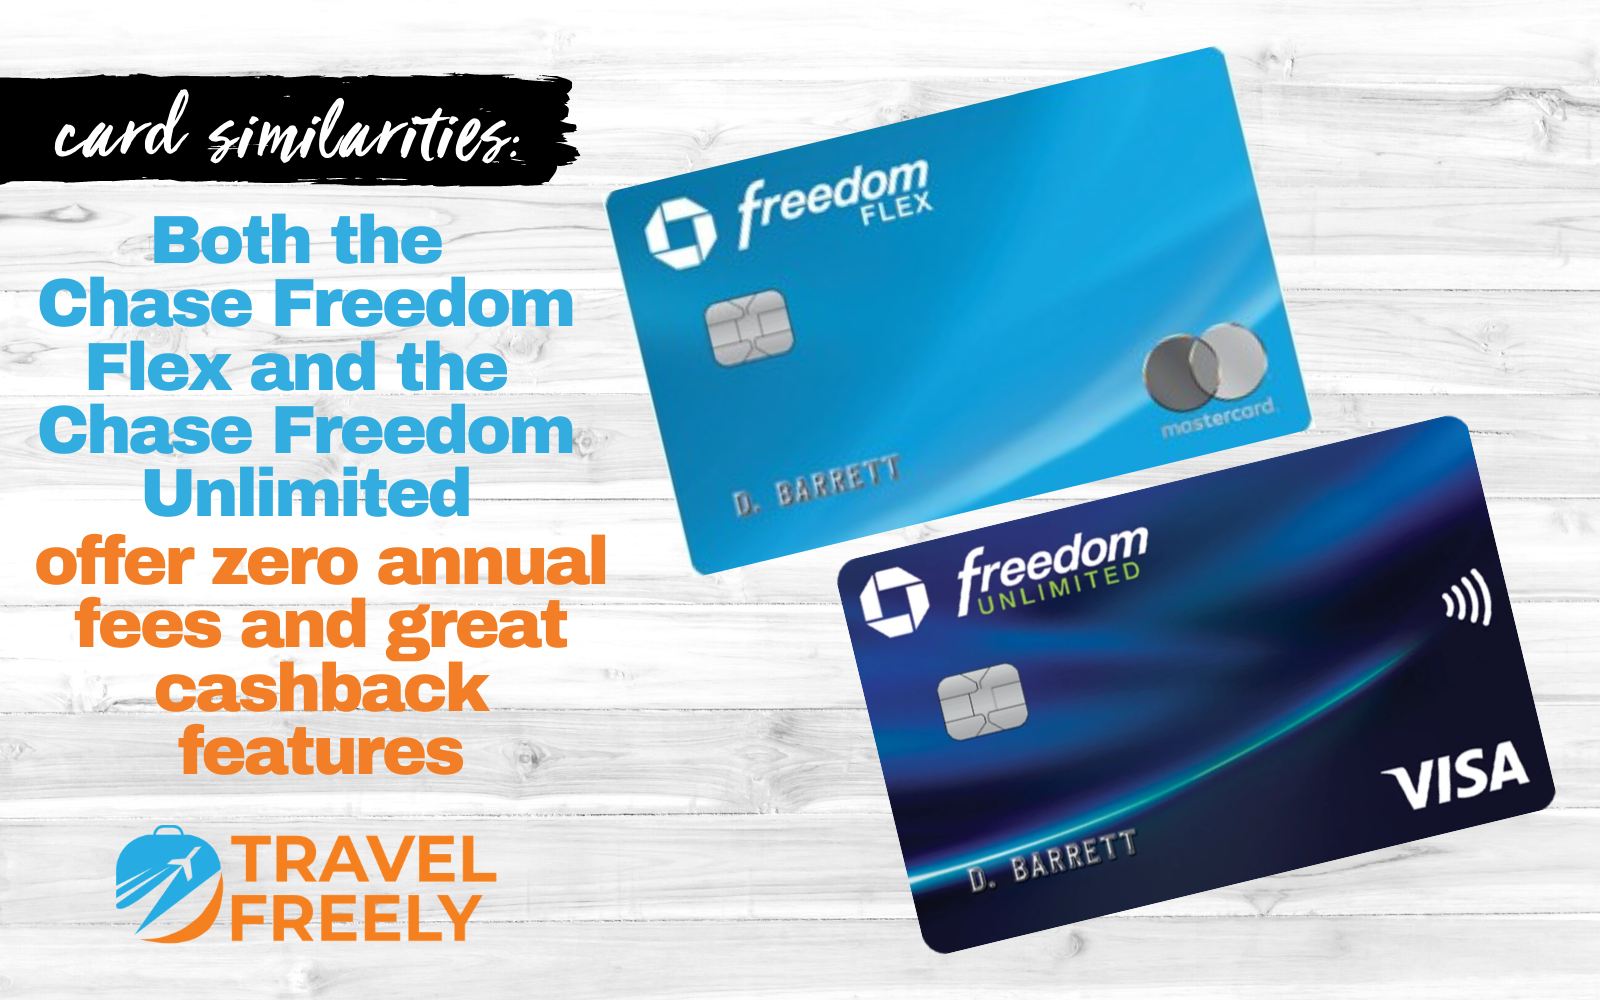 Chase Freedom Flex and Chase Freedom Unlimited sim